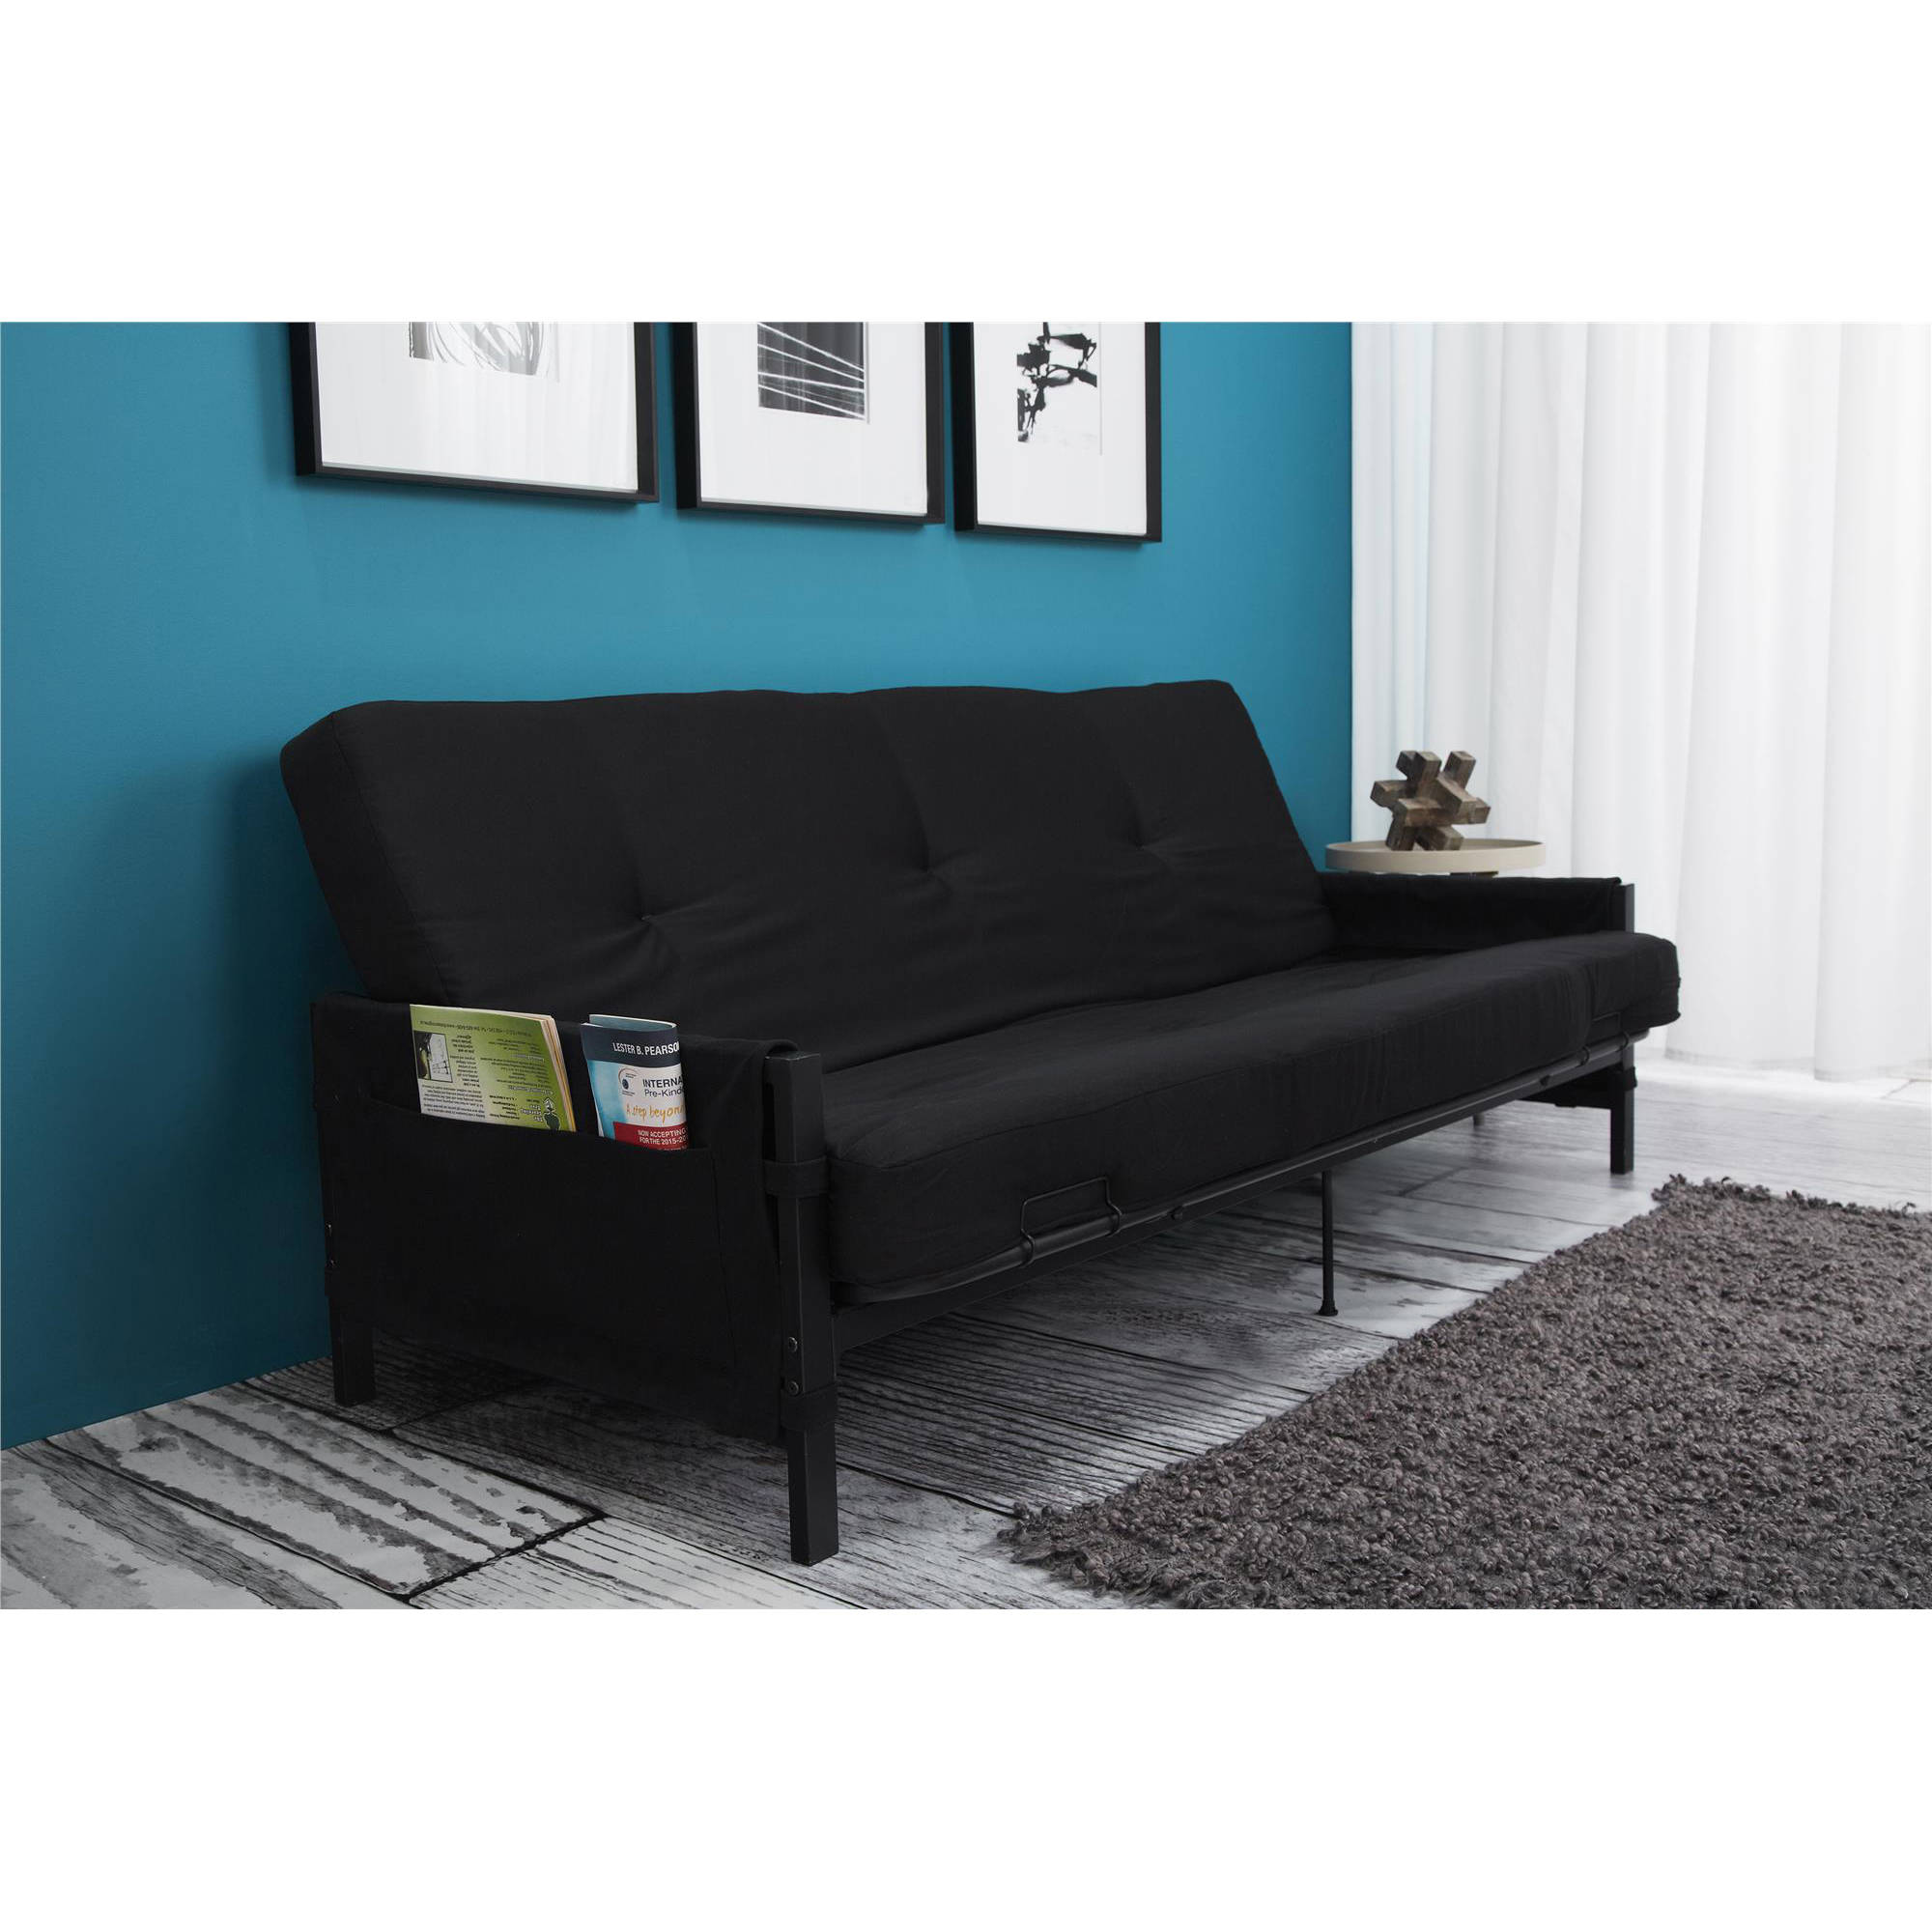 Mainstays Fairview Storage Arm Futon With 6 Mattress Black